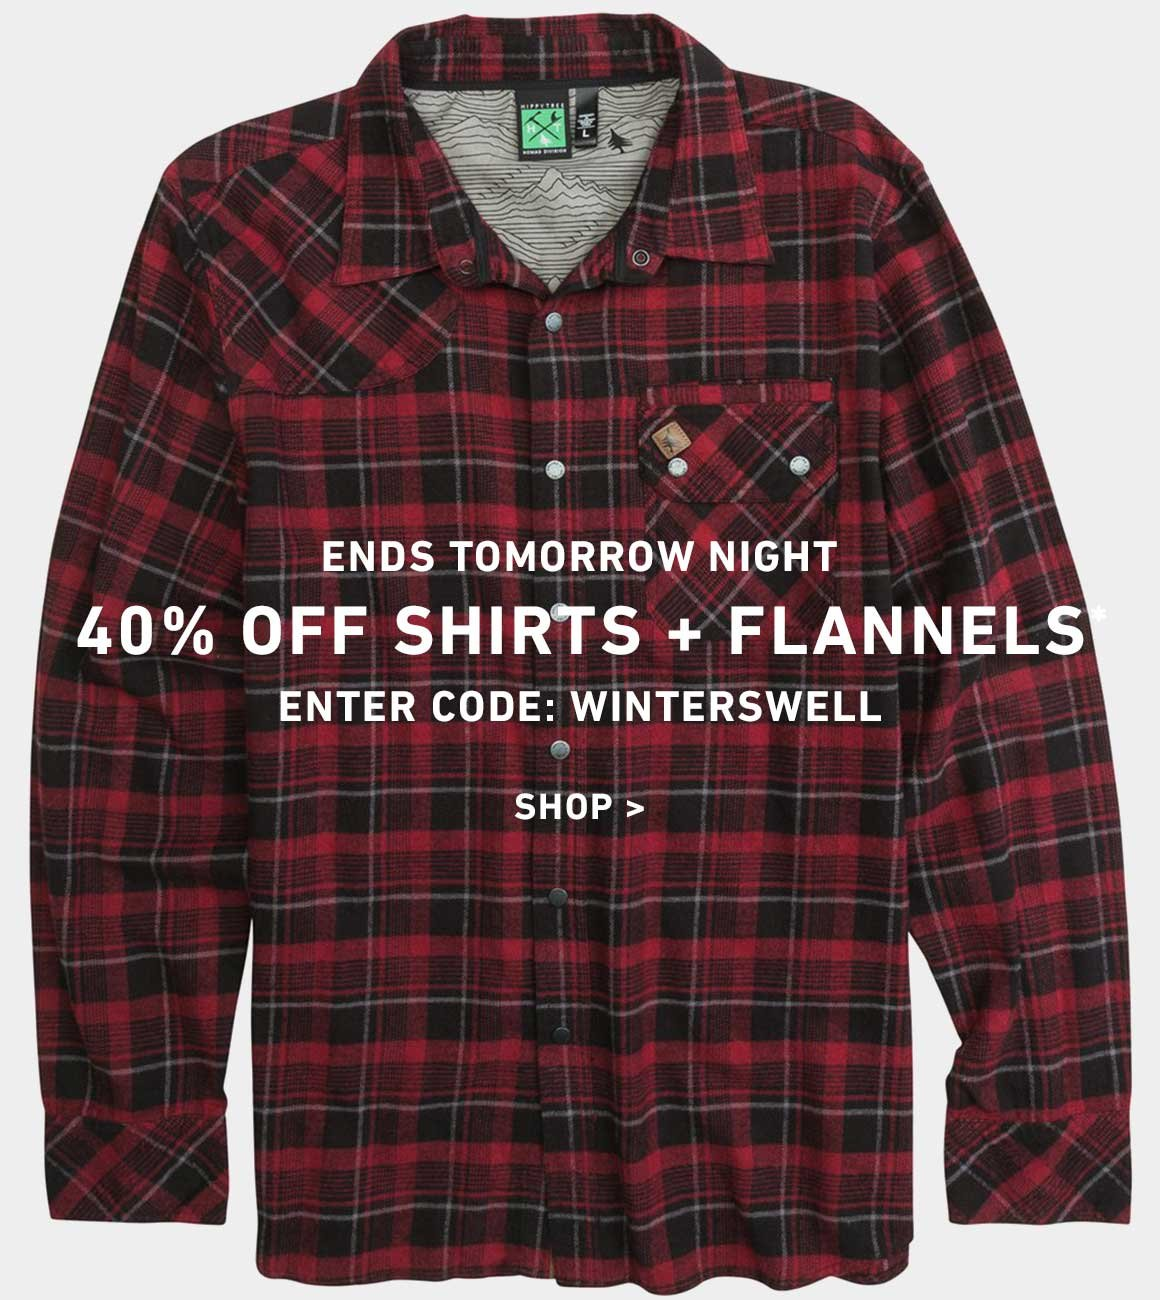 ENDS TOMORROW NIGHT: 40% Off New Shirts + Flannels! Enter Code: WINTERSWELL